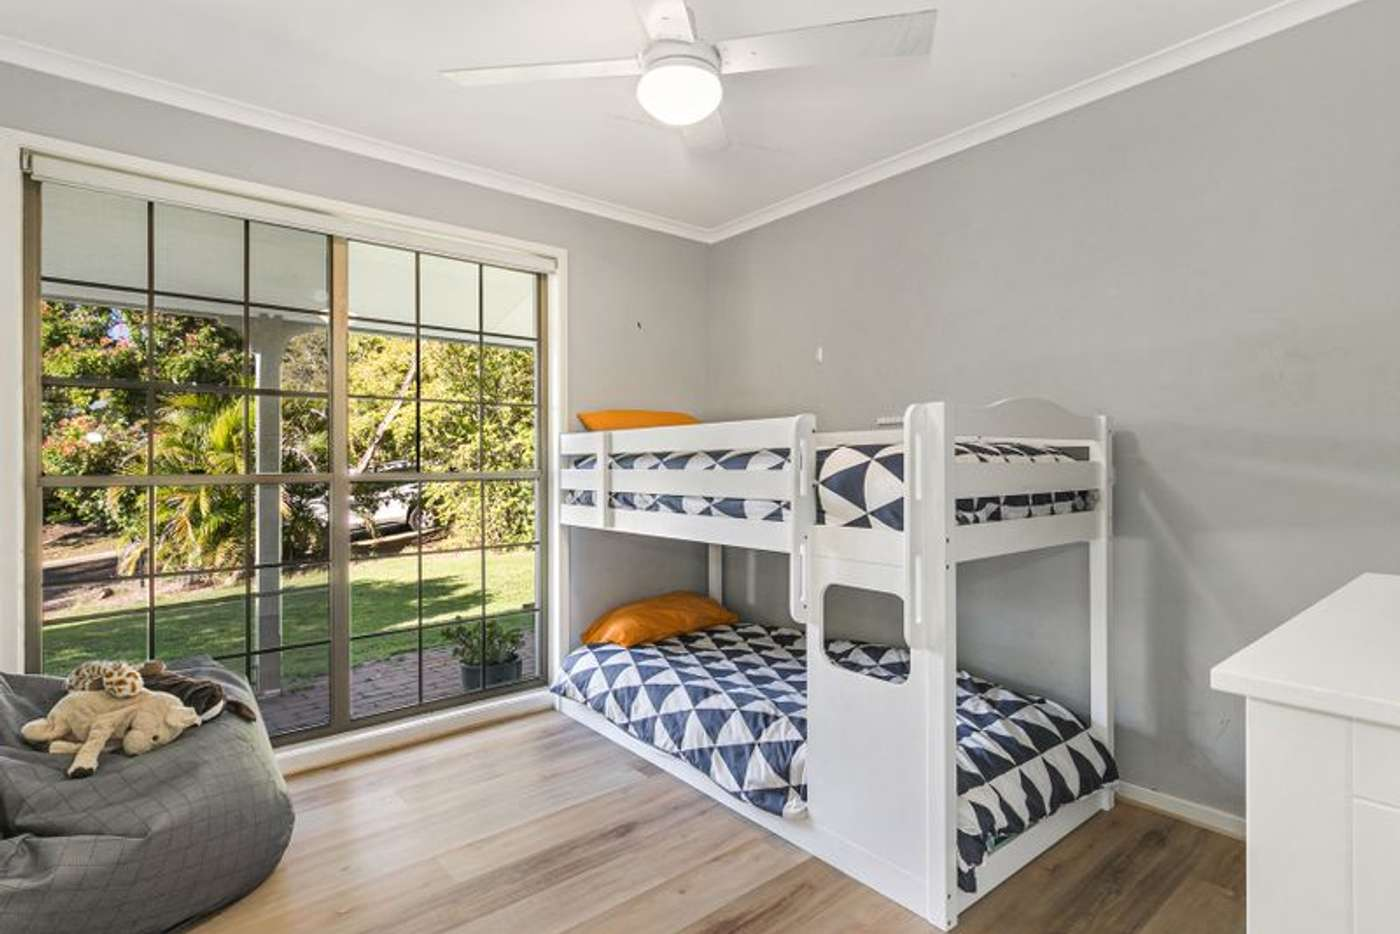 Fifth view of Homely house listing, 4 Hovea Place, Bellbowrie QLD 4070